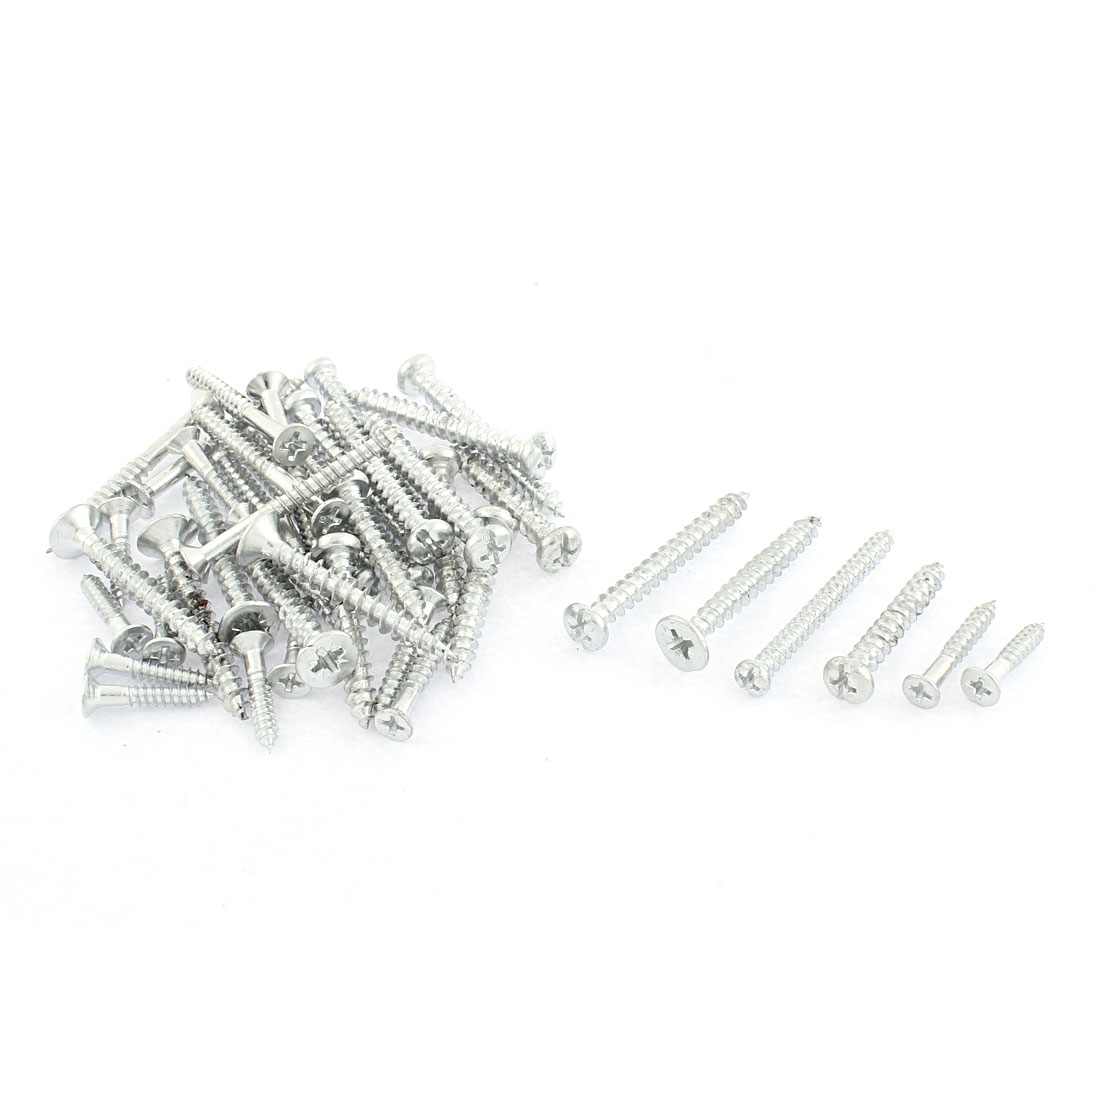 43 in 1 Silver Tone Phillips Head Self-Drilling Screw Tool Assortment Set